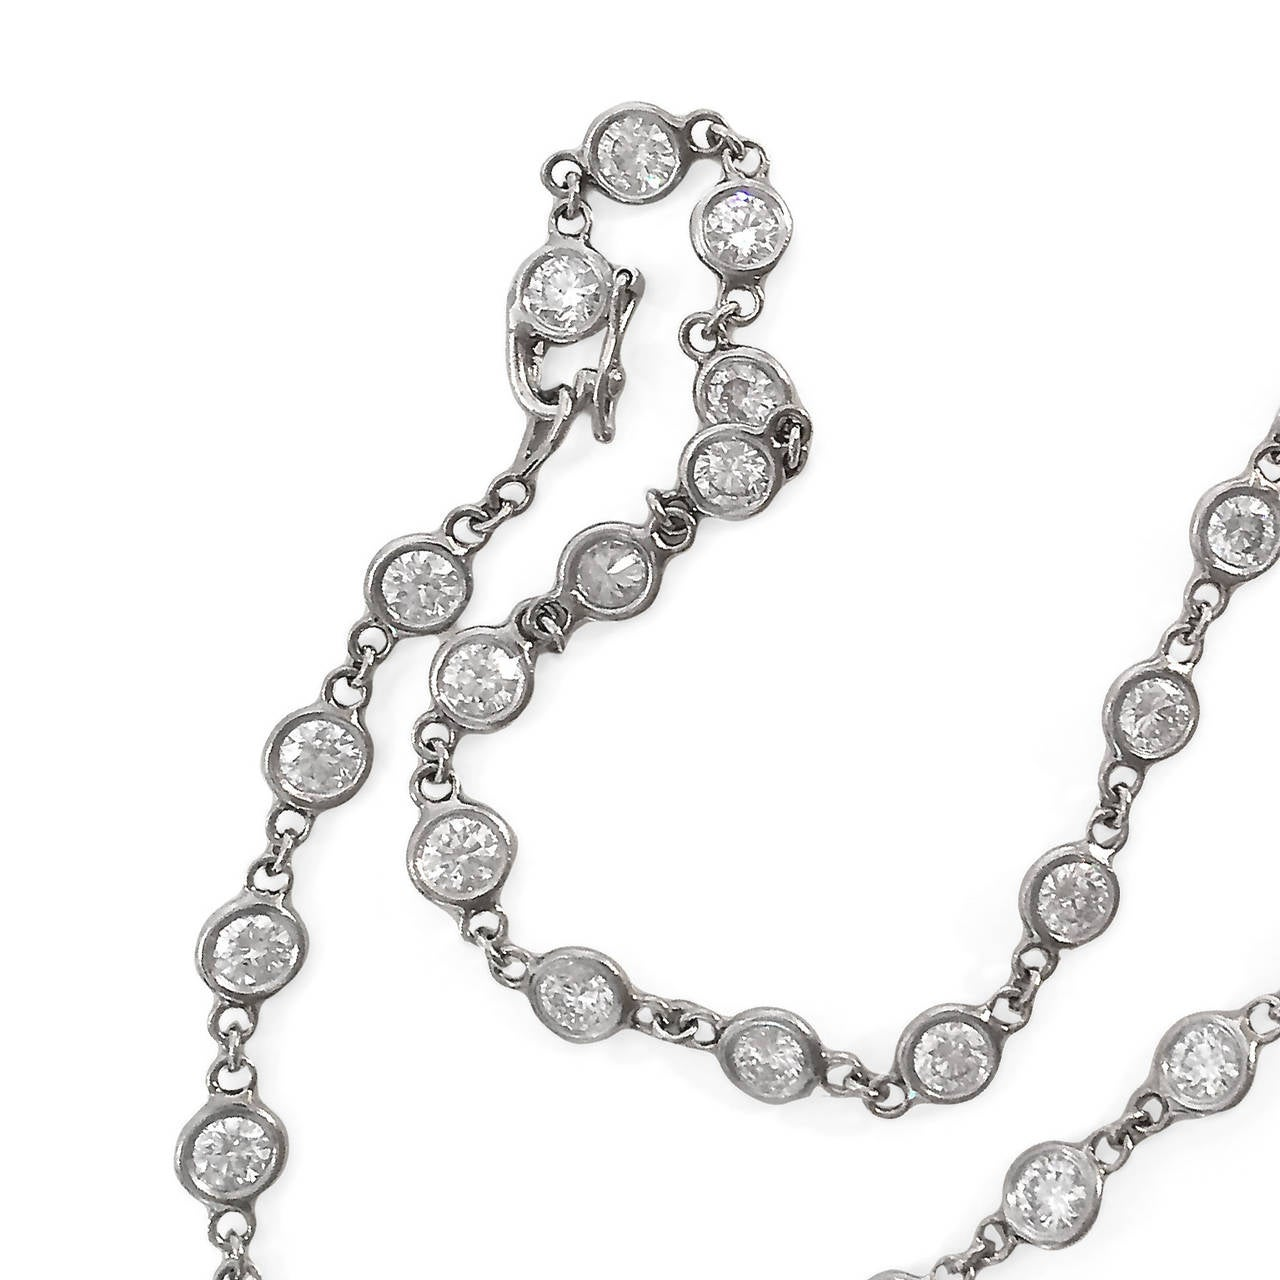 Contemporary Diamond Platinum 7.77 Carat Necklace For Sale